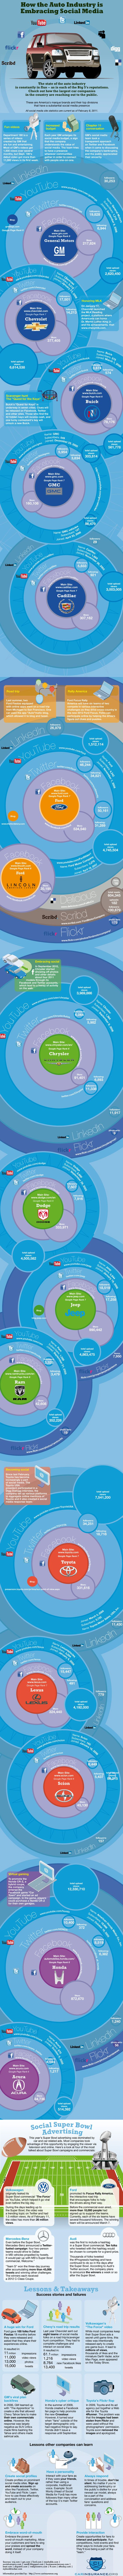 #Infographic - How the auto industry is embracing social media